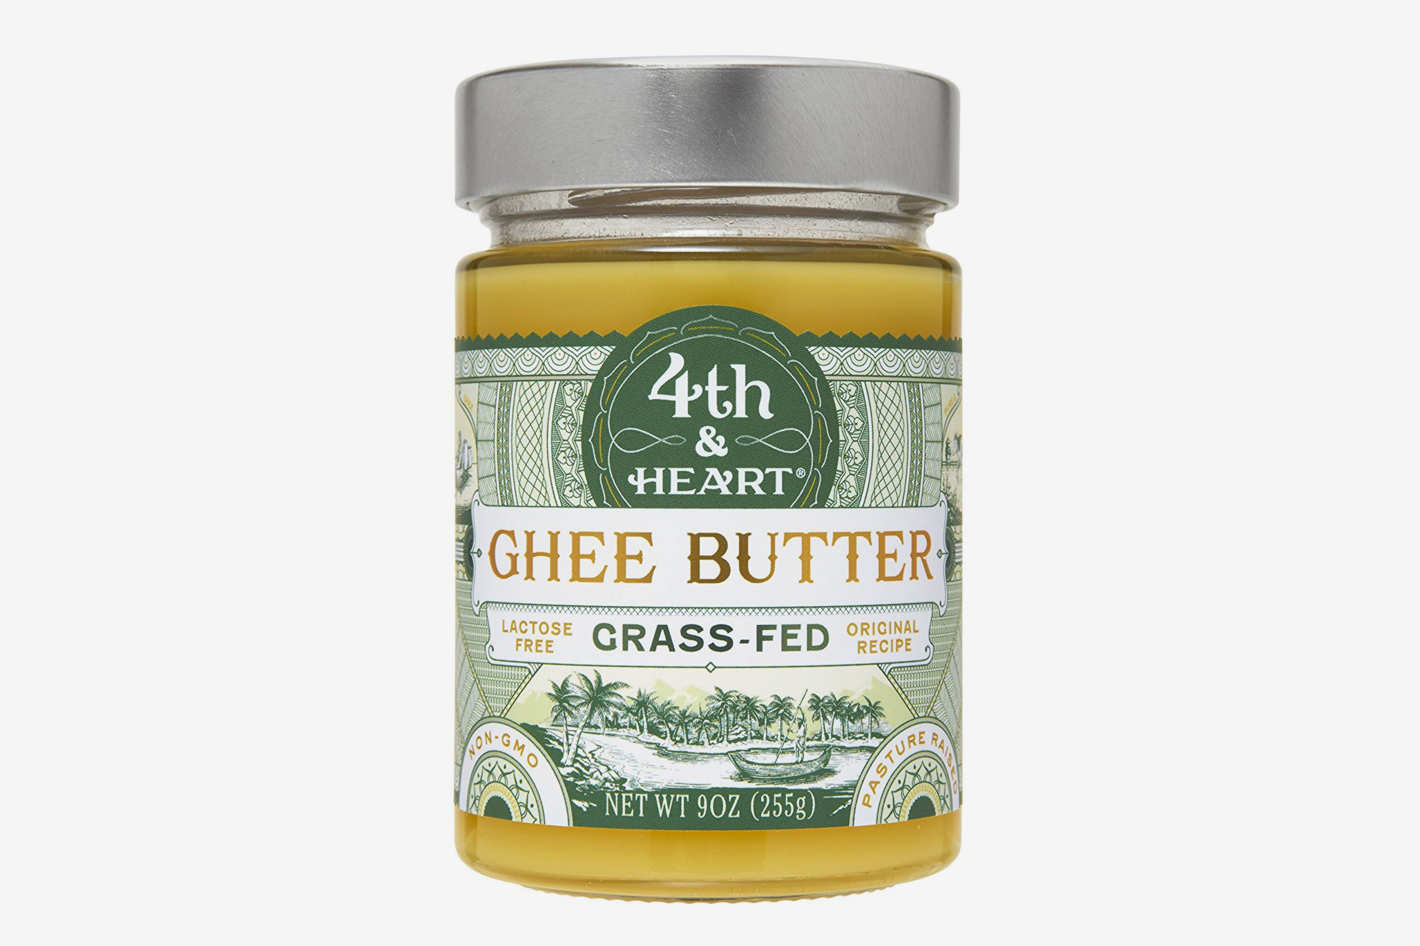 4th & Heart Original Grass-Fed Ghee Butter